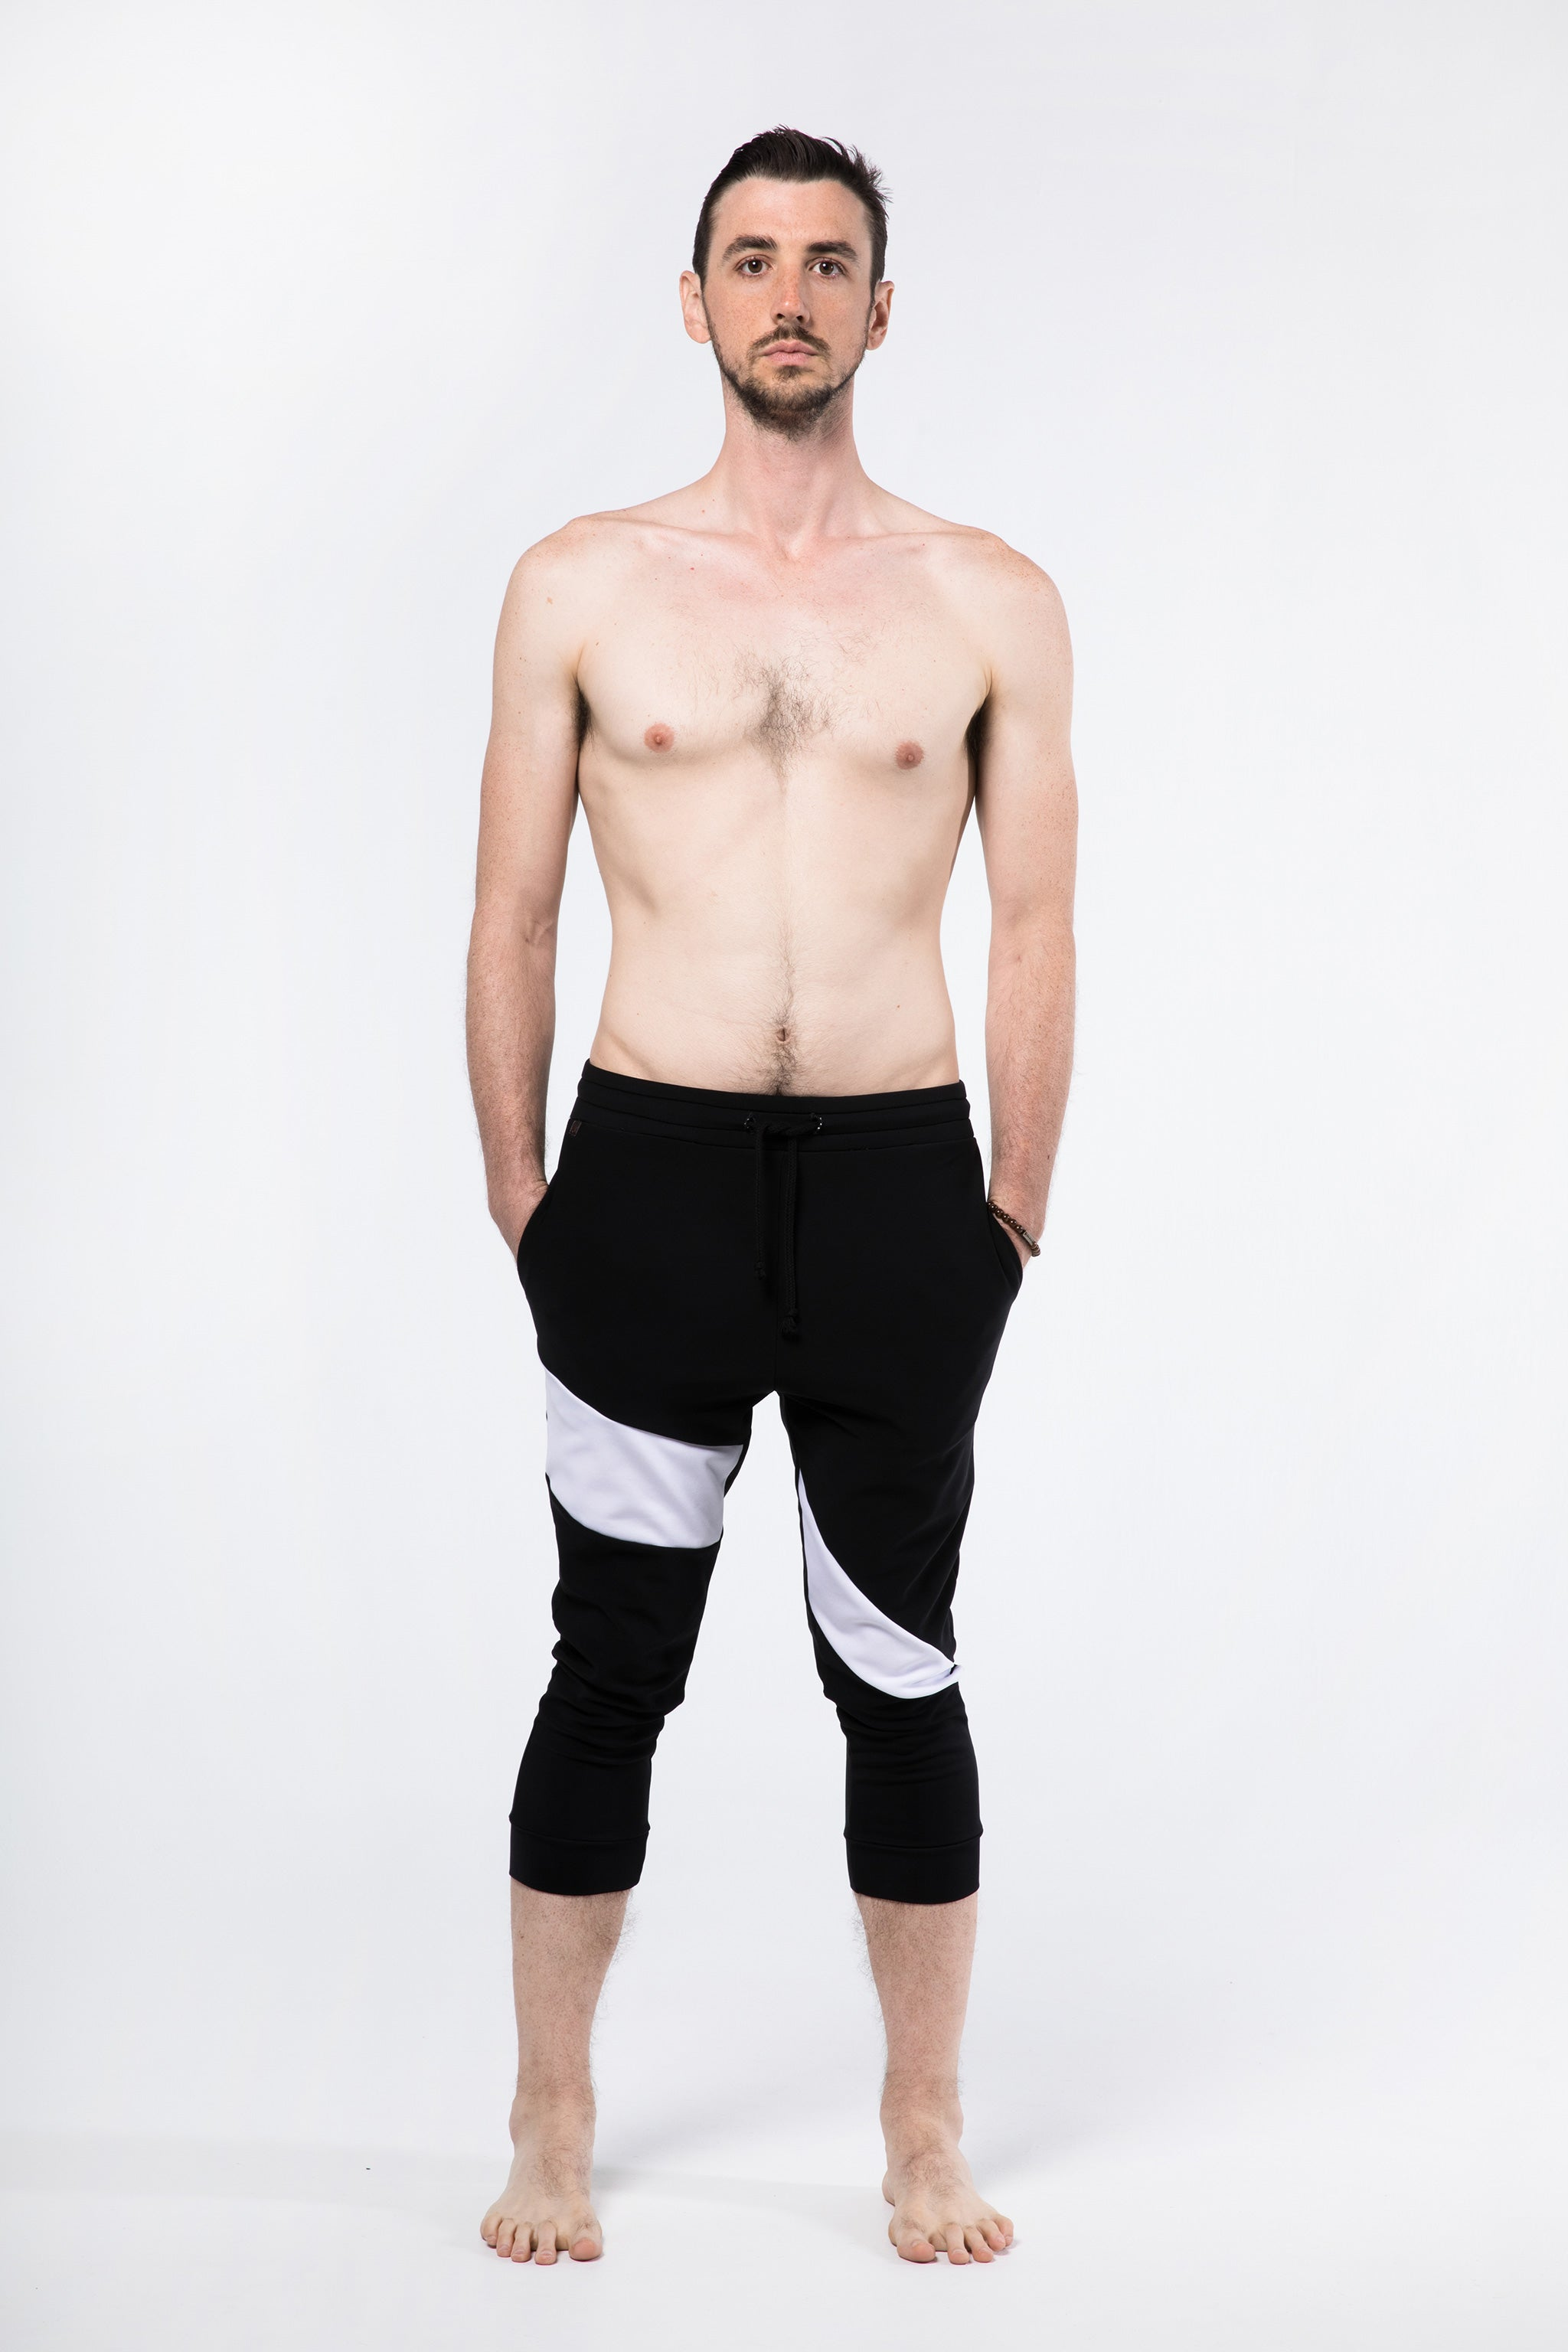 Stylish Yoga Pants for Men - Fitness Clothing